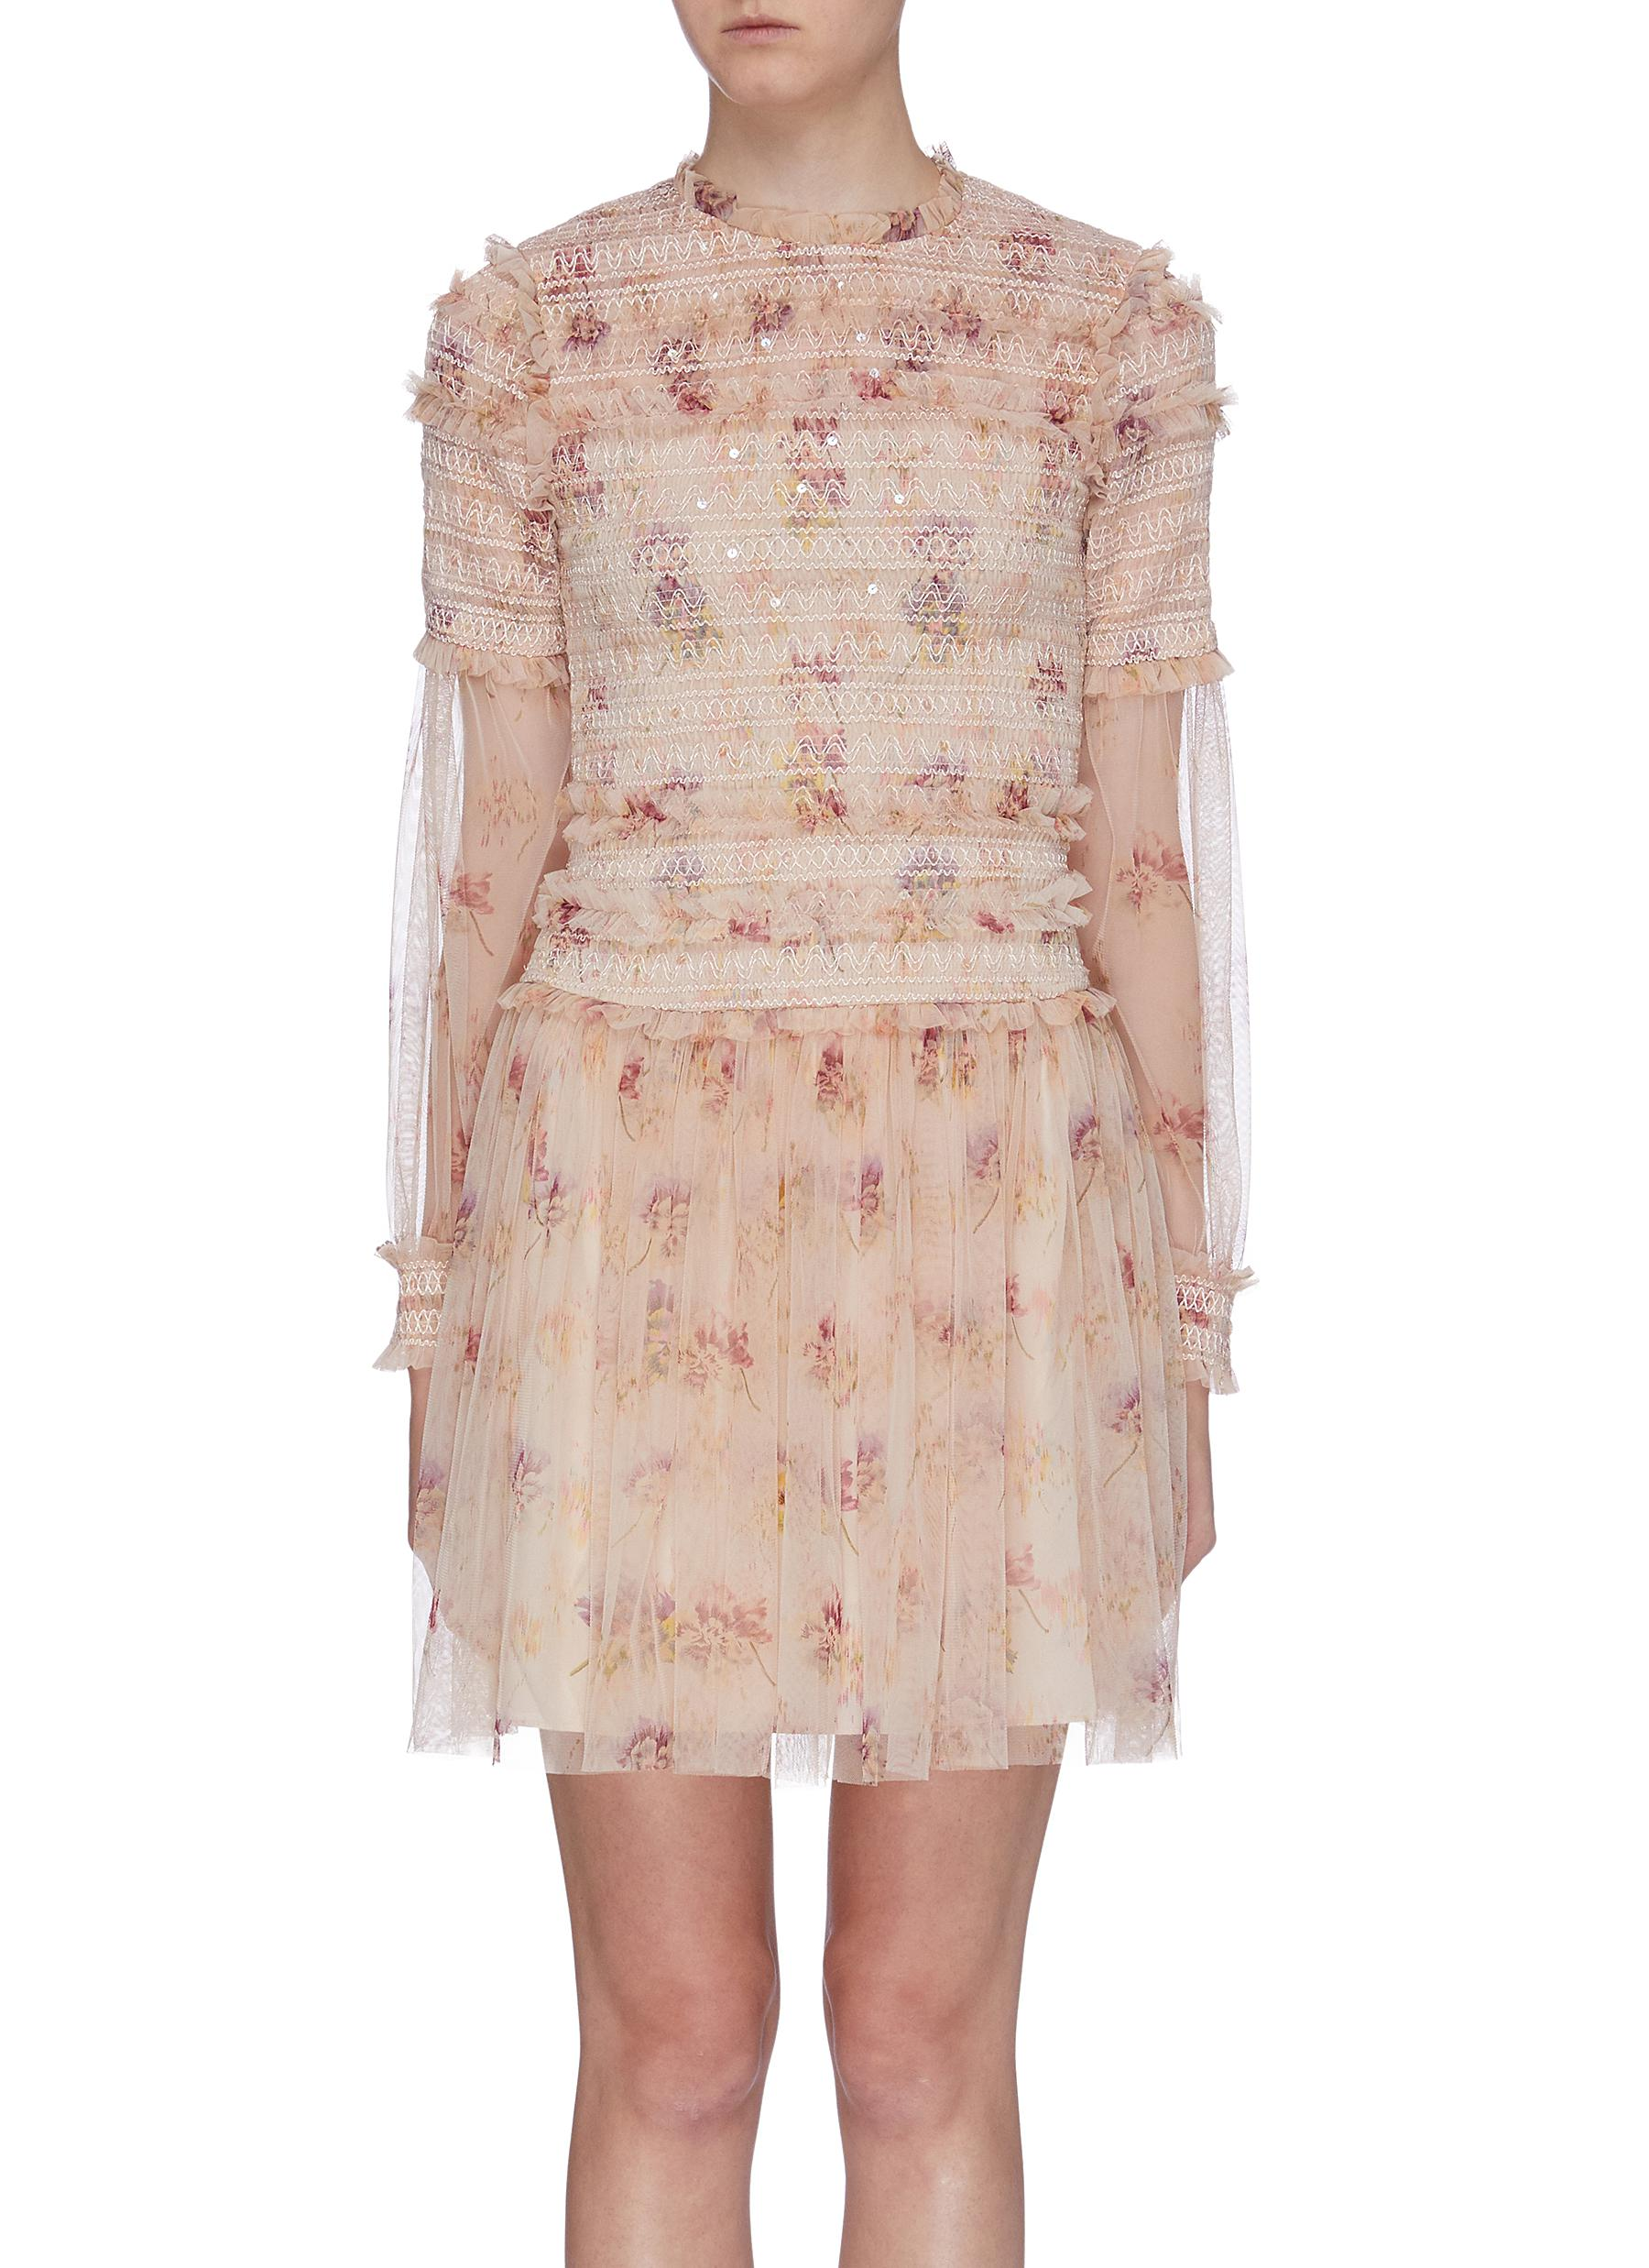 Think Of Me ruffle smocked floral print tulle dress by Needle & Thread